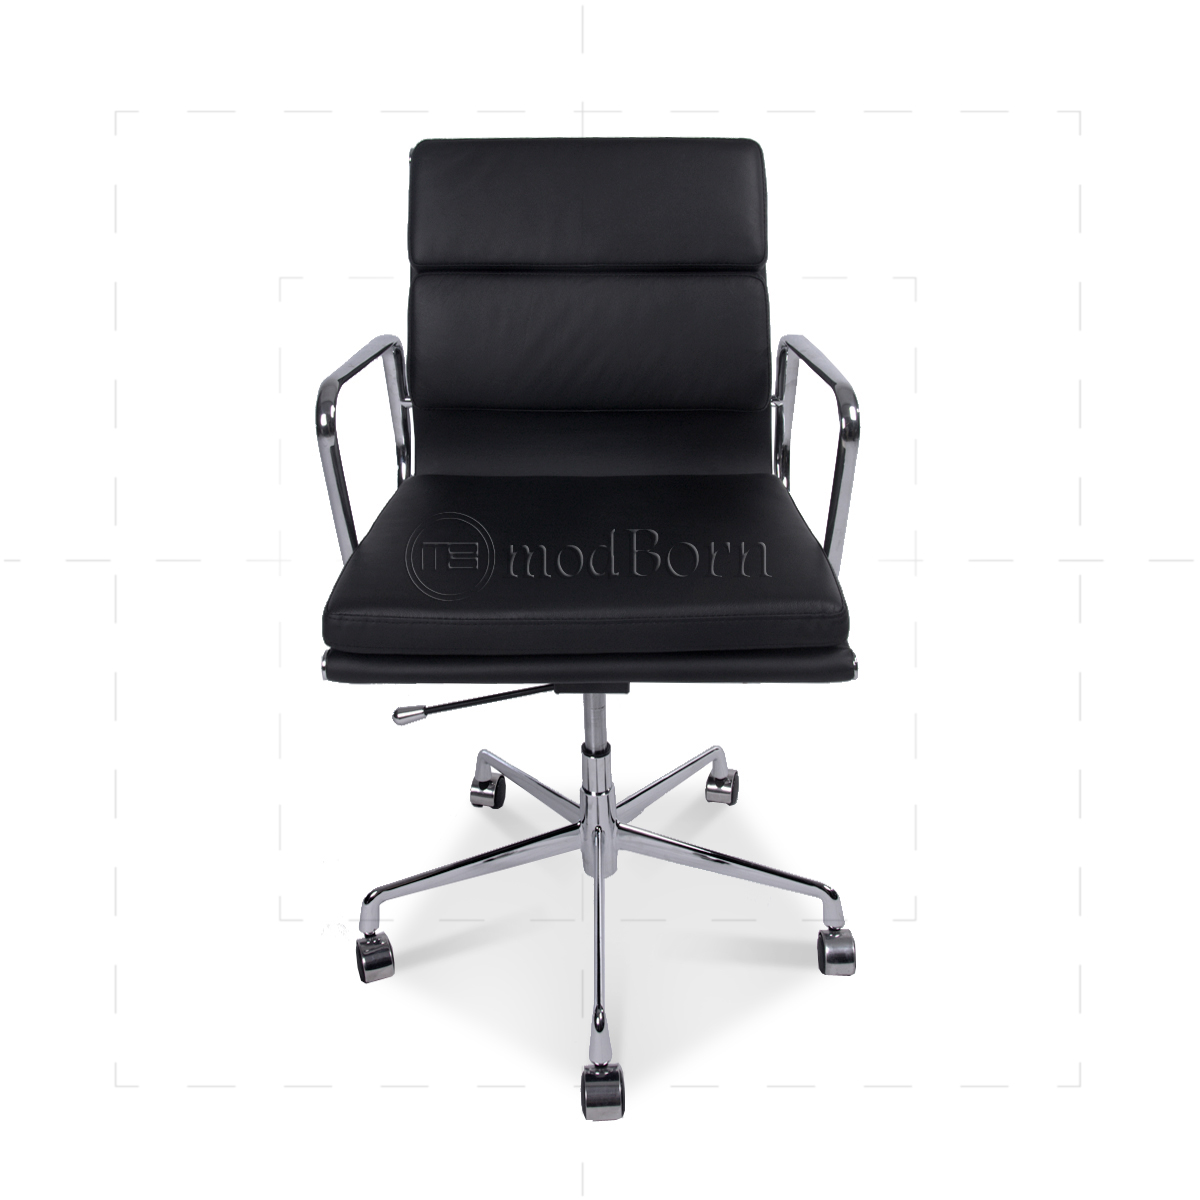 ea217 eames style office chair low back soft pad black. Black Bedroom Furniture Sets. Home Design Ideas